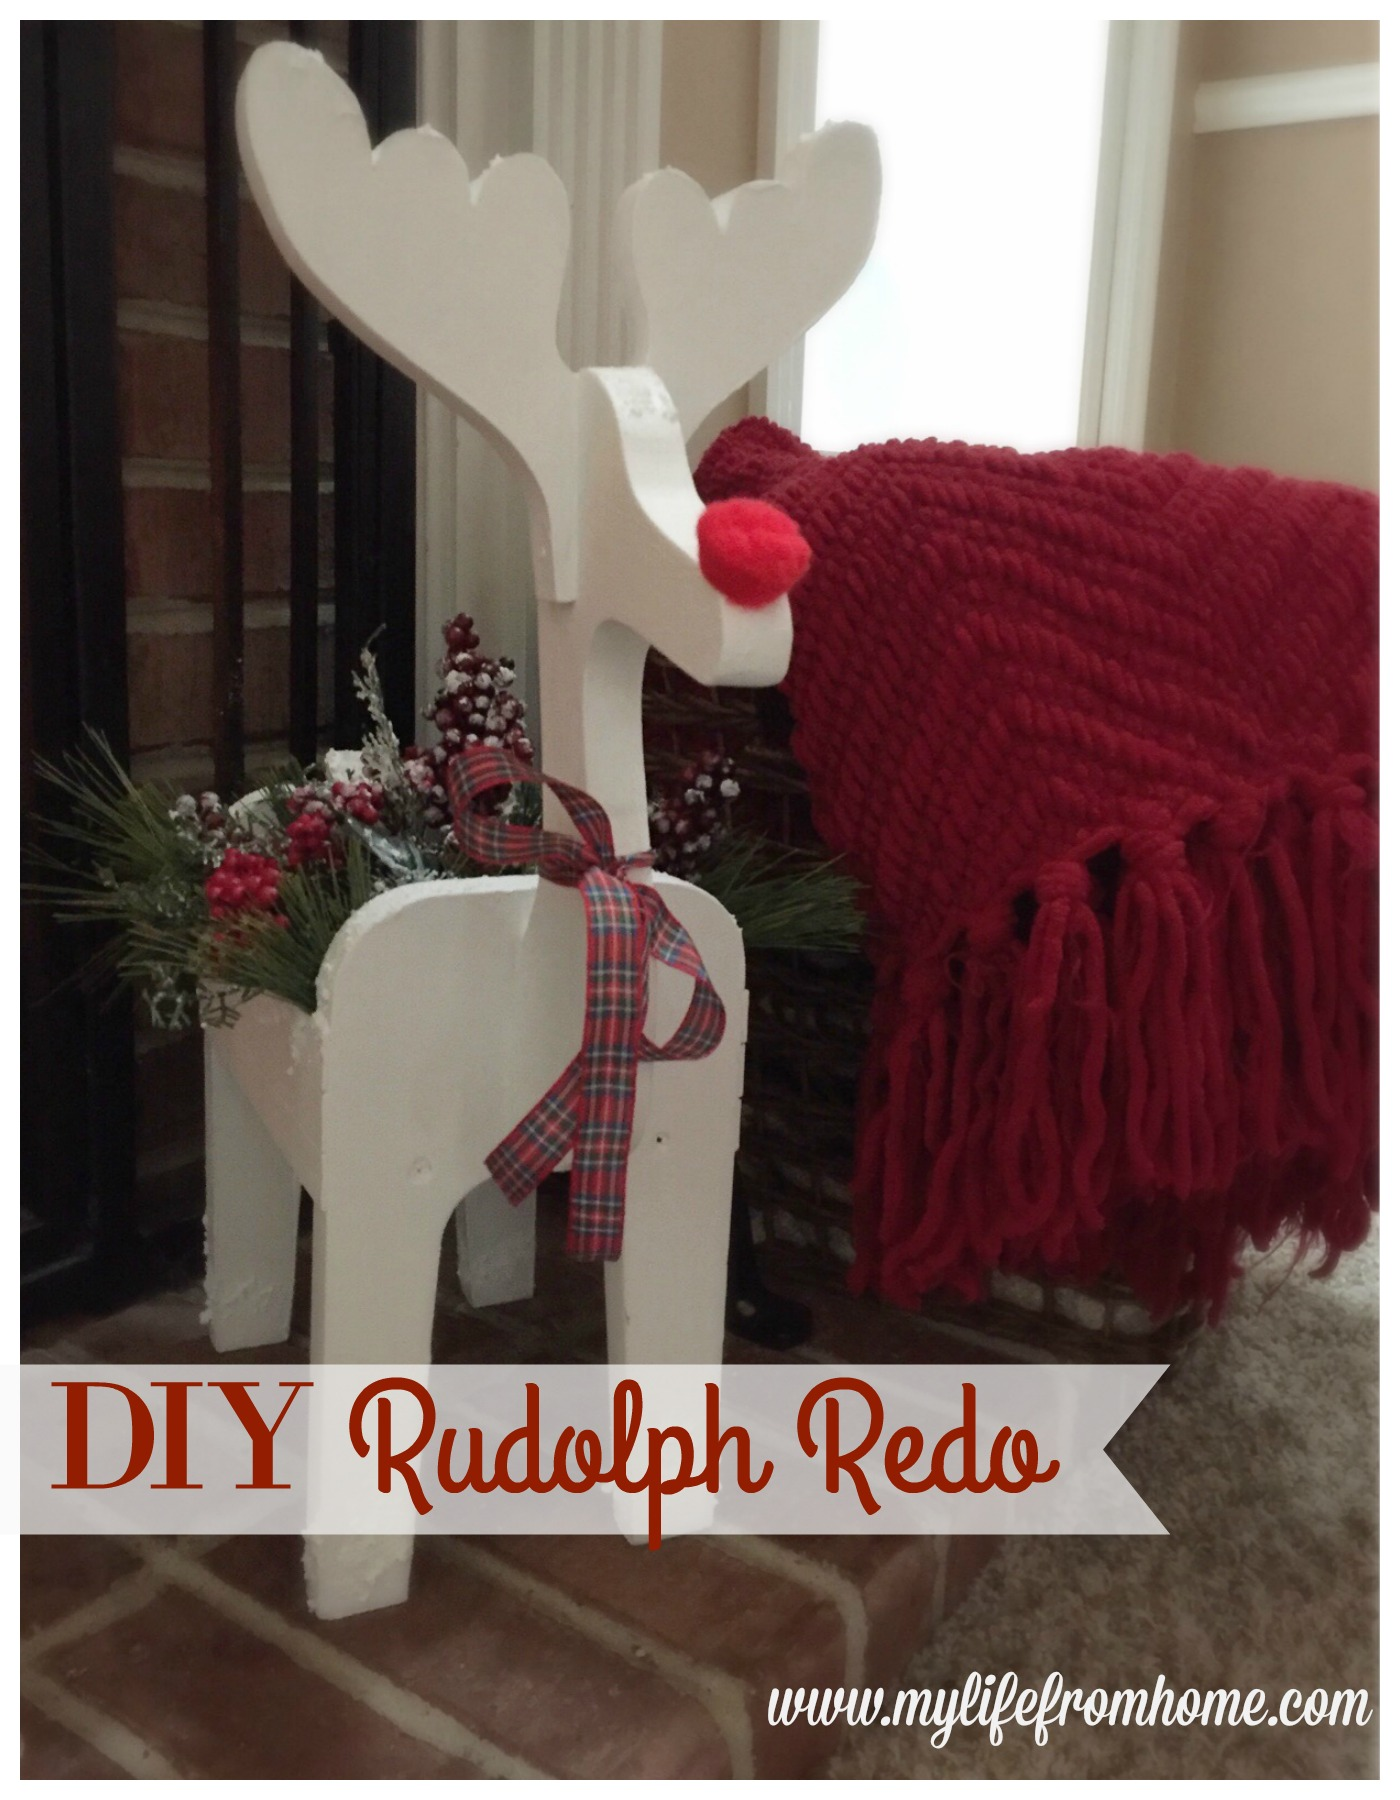 DIY Rudolph Redo by www.mylifefromhome.com